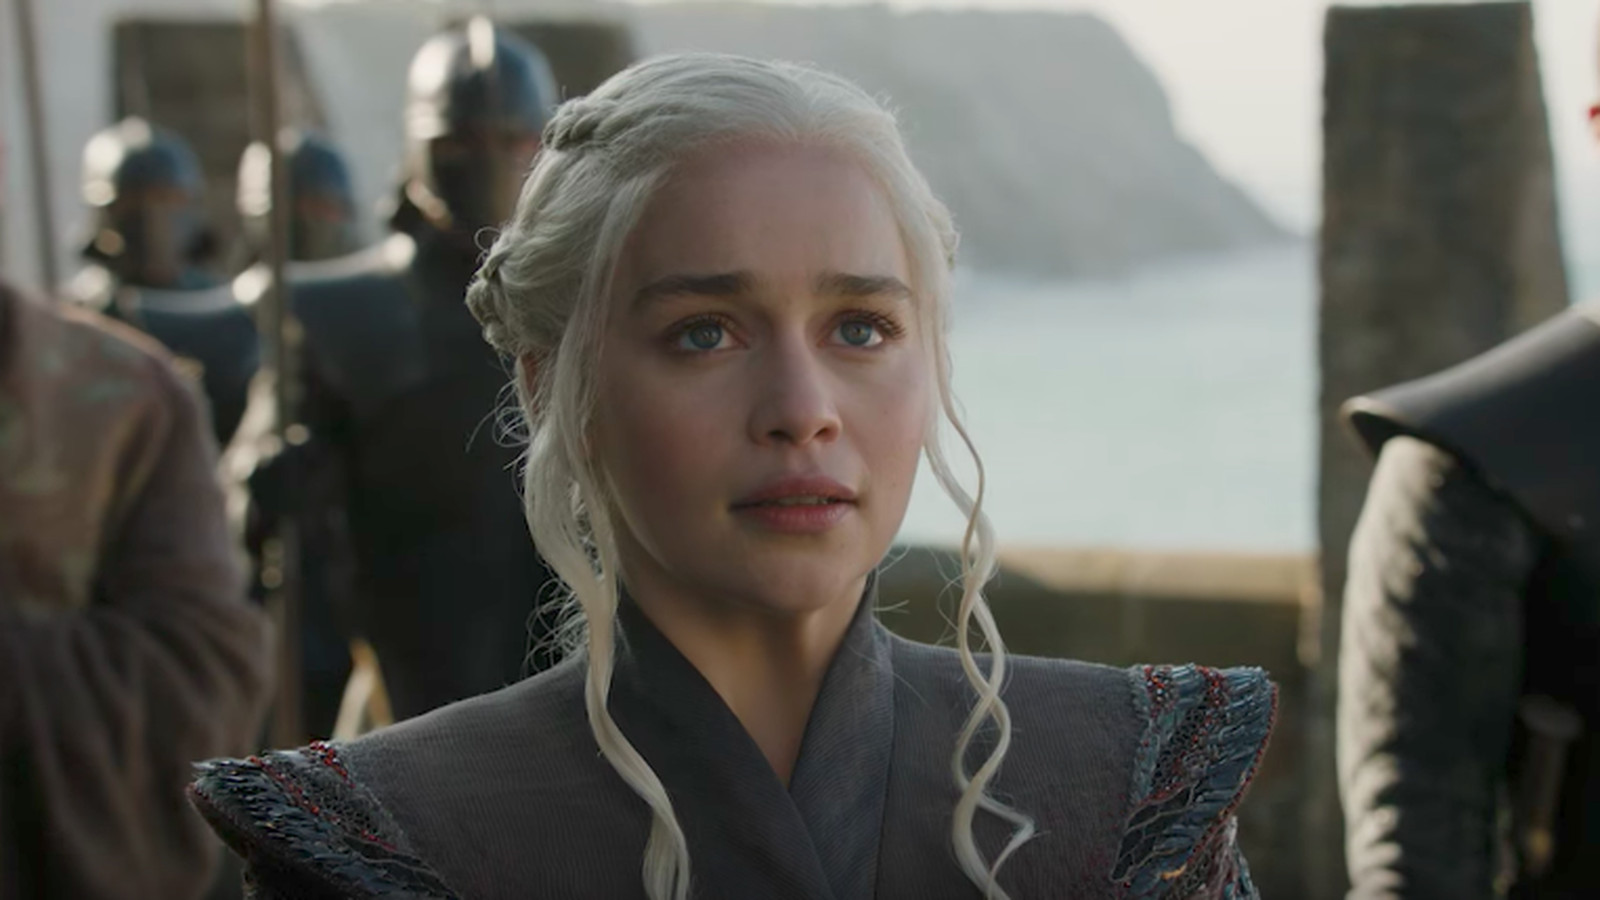 The huge plot points teased in Game of Thrones' season 7 trailer